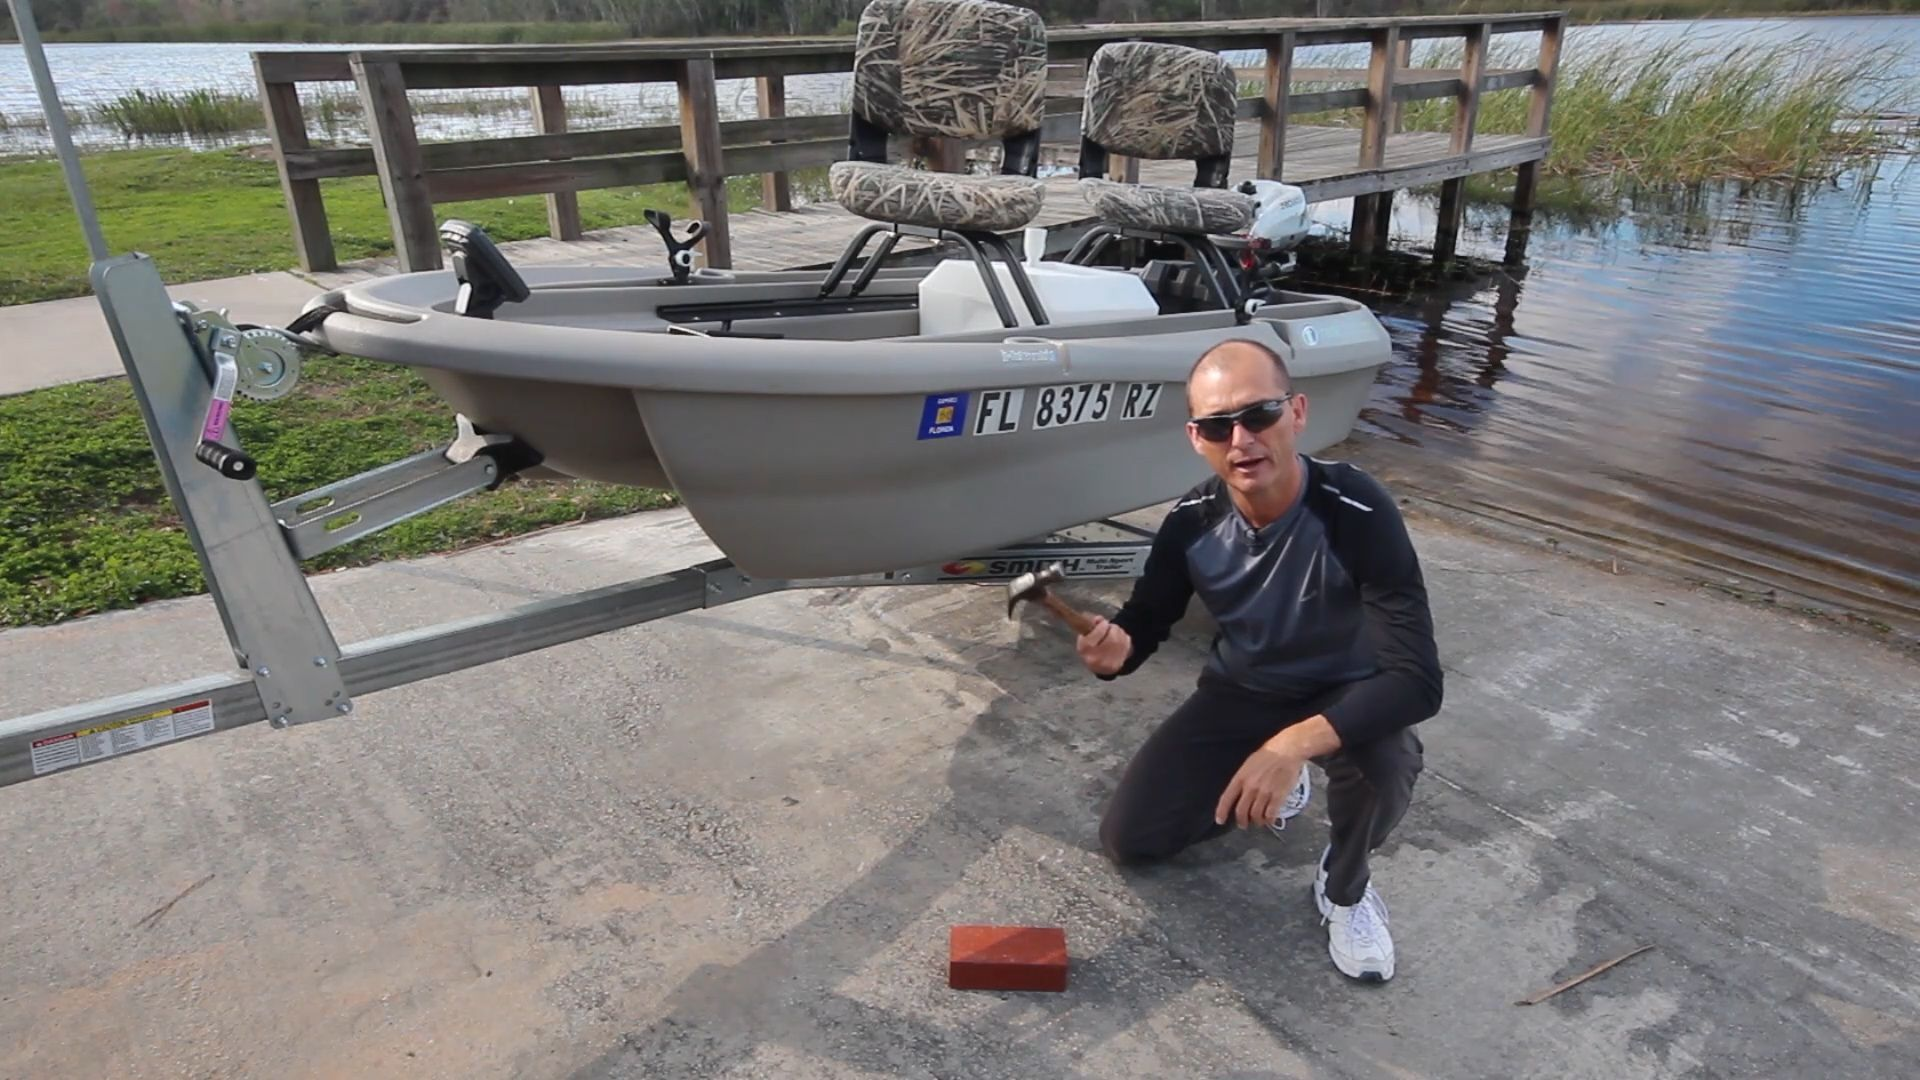 Twin Troller X10 The Worlds Best Fishing Boat 2 Man Small Bass Fishing Boat Freedom Electric Marine Bass Fishing Boats Fishing Boats Boat